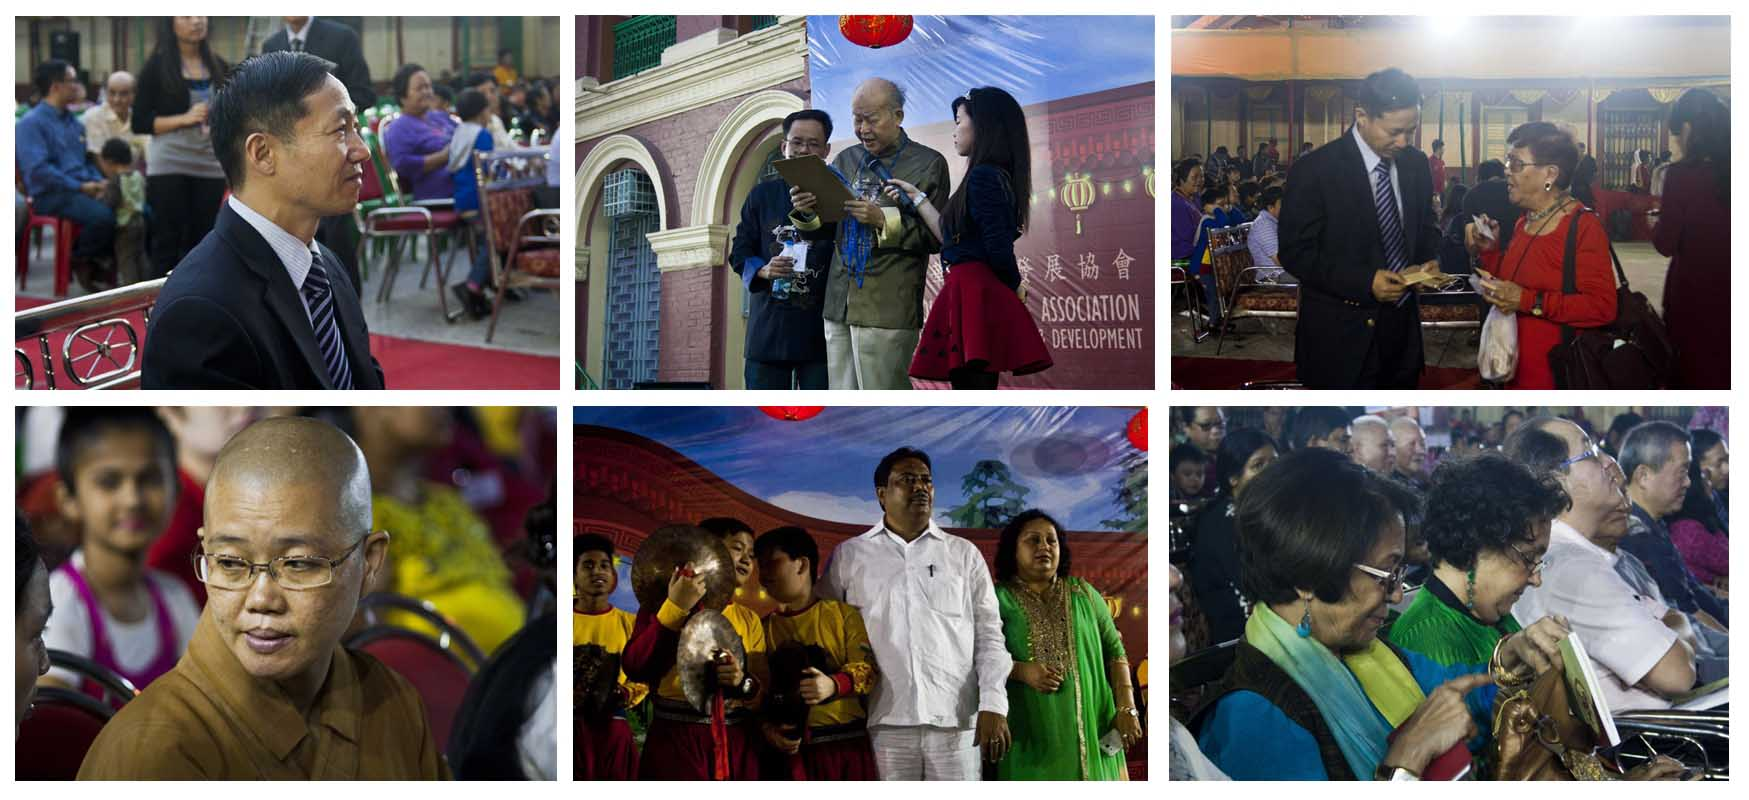 Dignitaries - Lion Dance Display & Cultural Show 2016, Kolkata, India